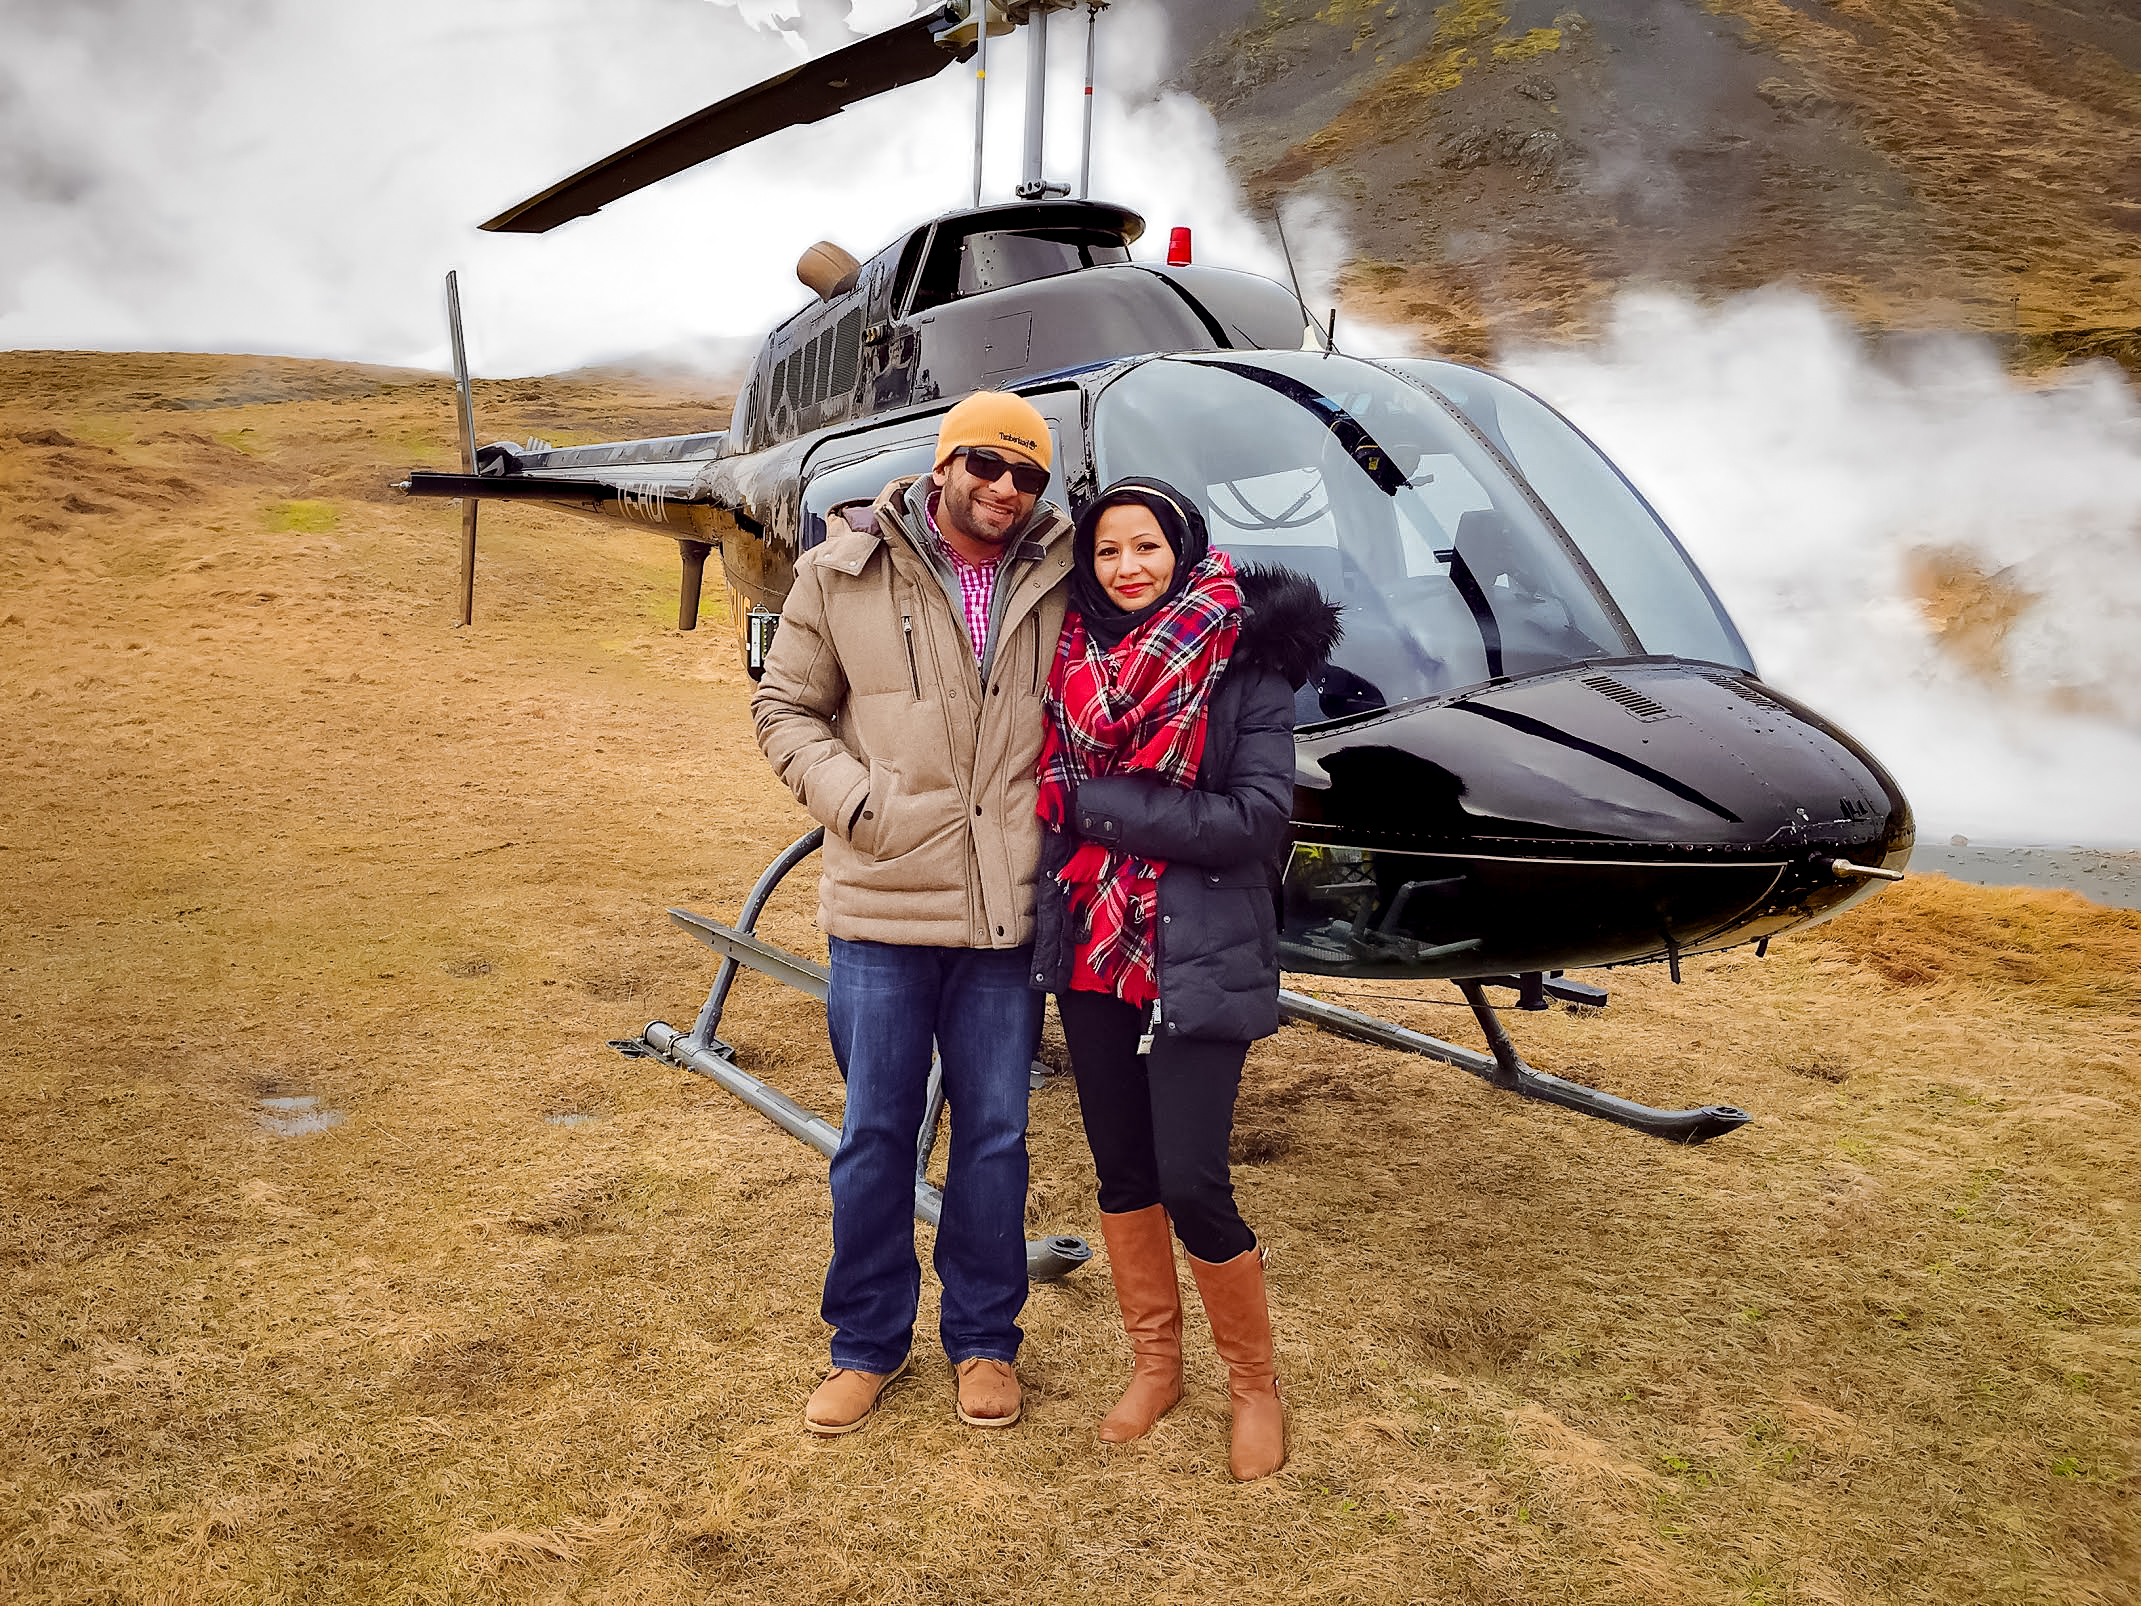 muslim travelers on volcano with black helicopter